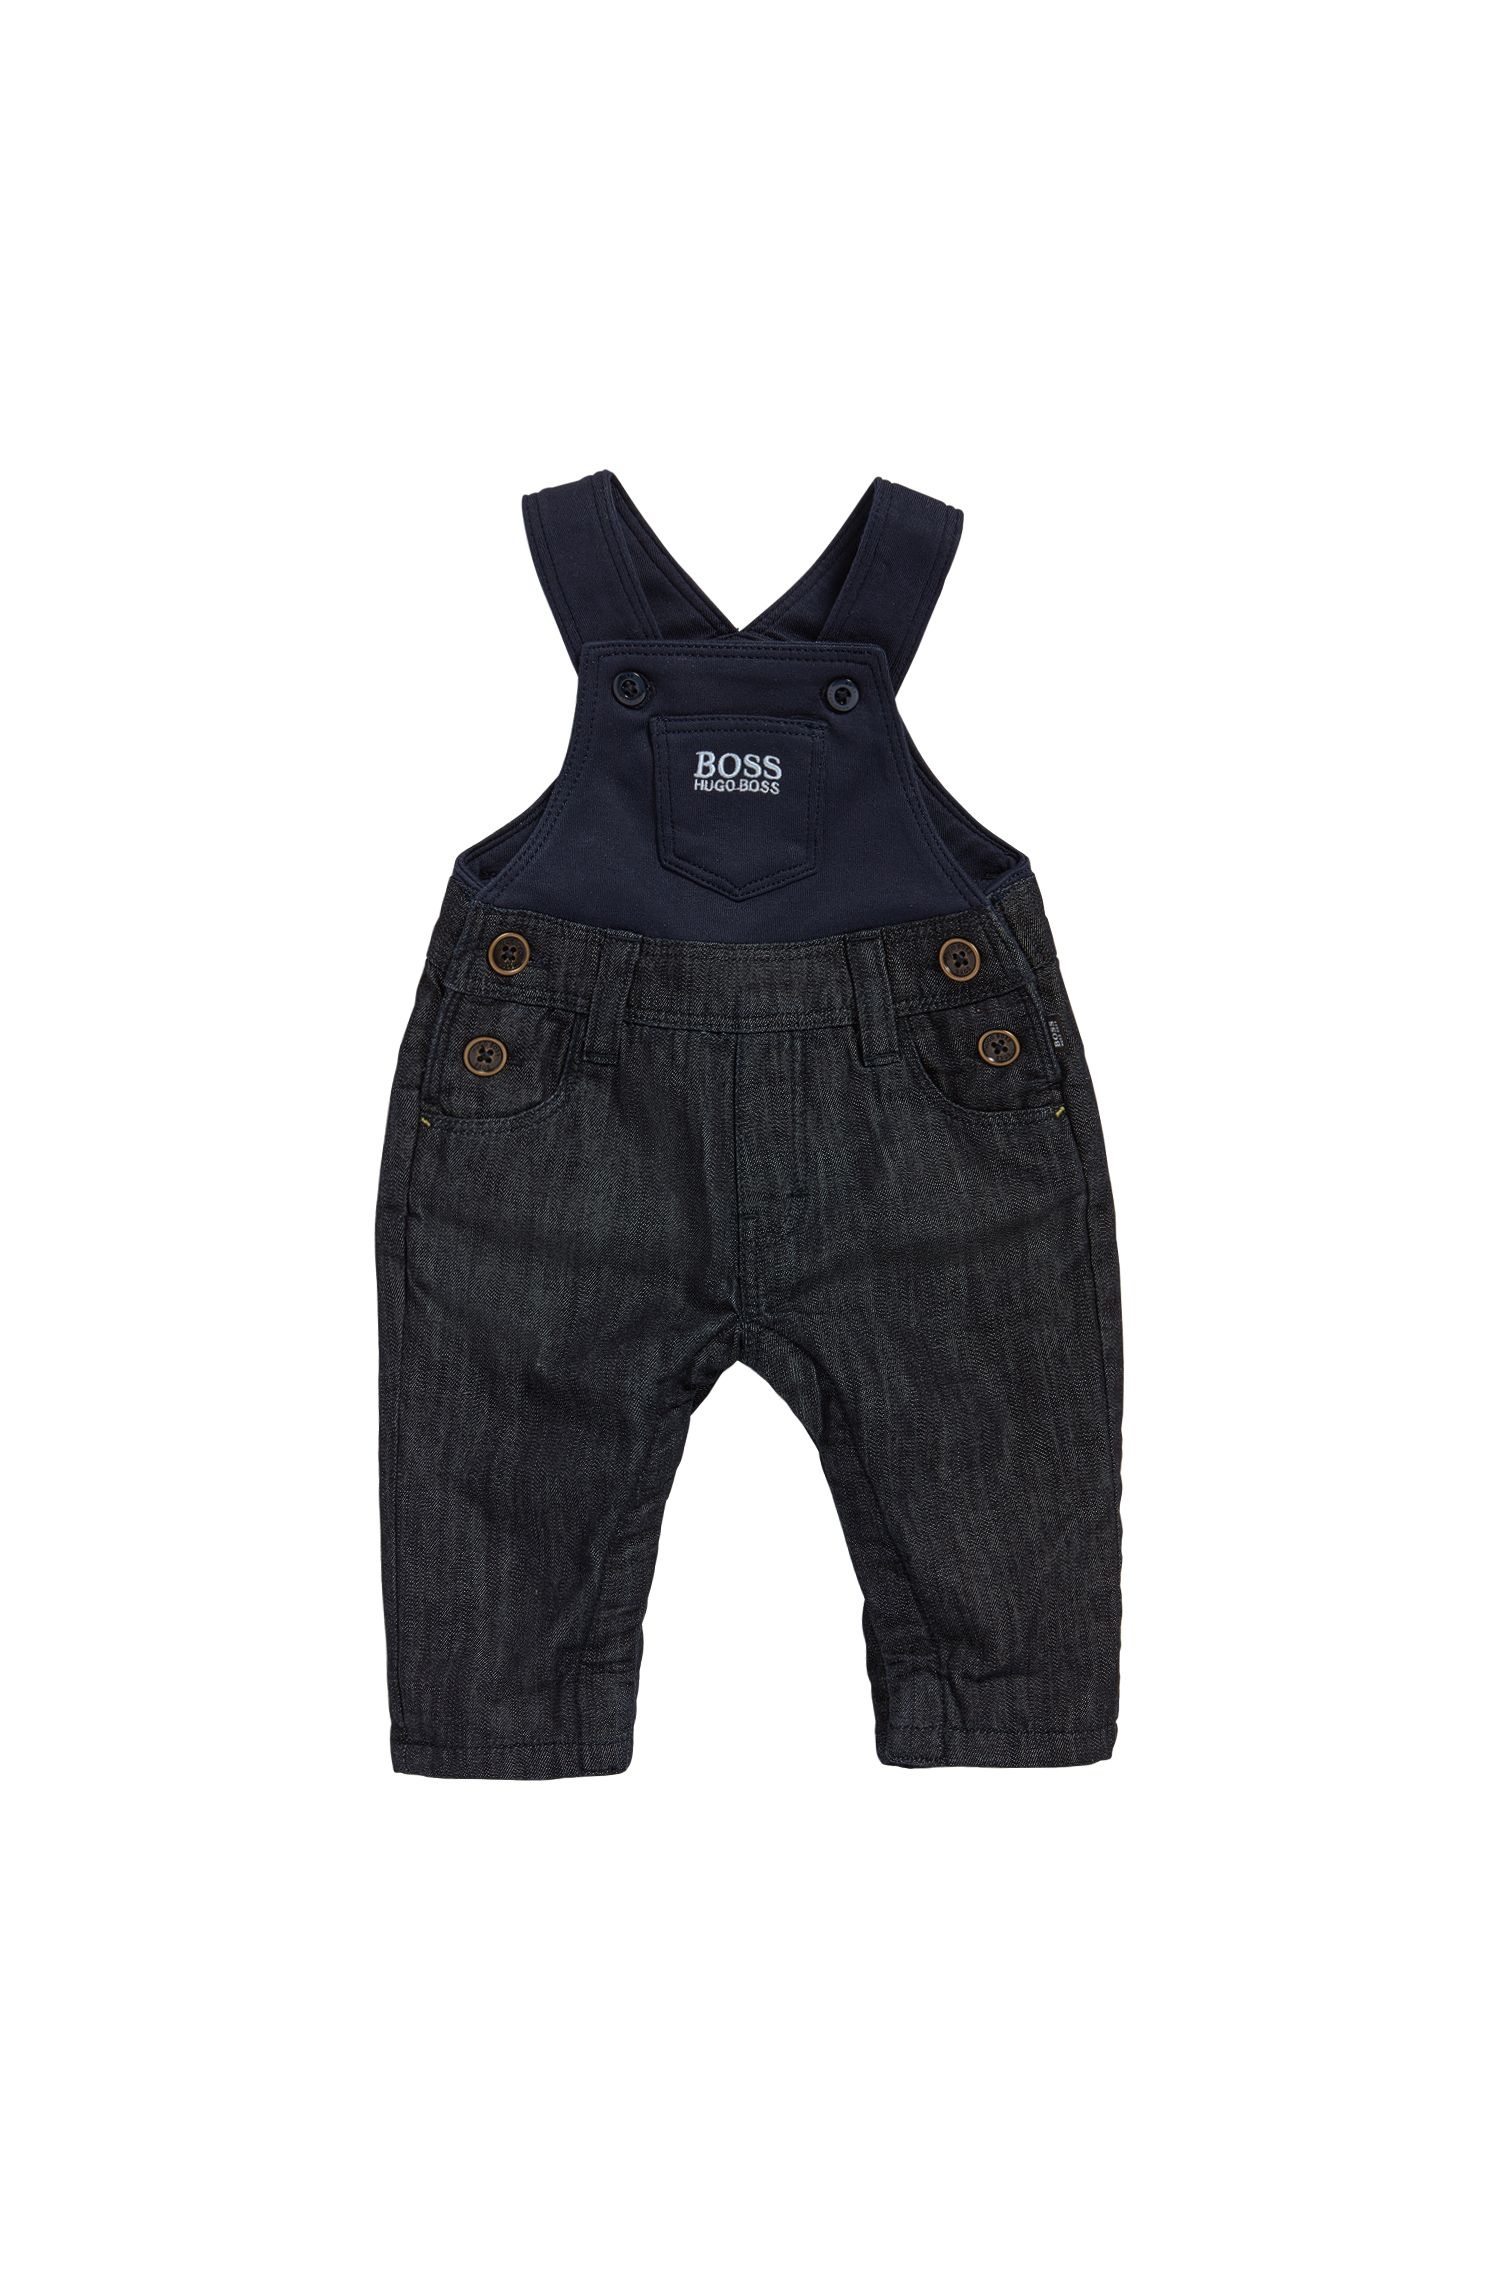 Baby-Latzhose aus Baumwolle in Denim-Optik: 'J94168'